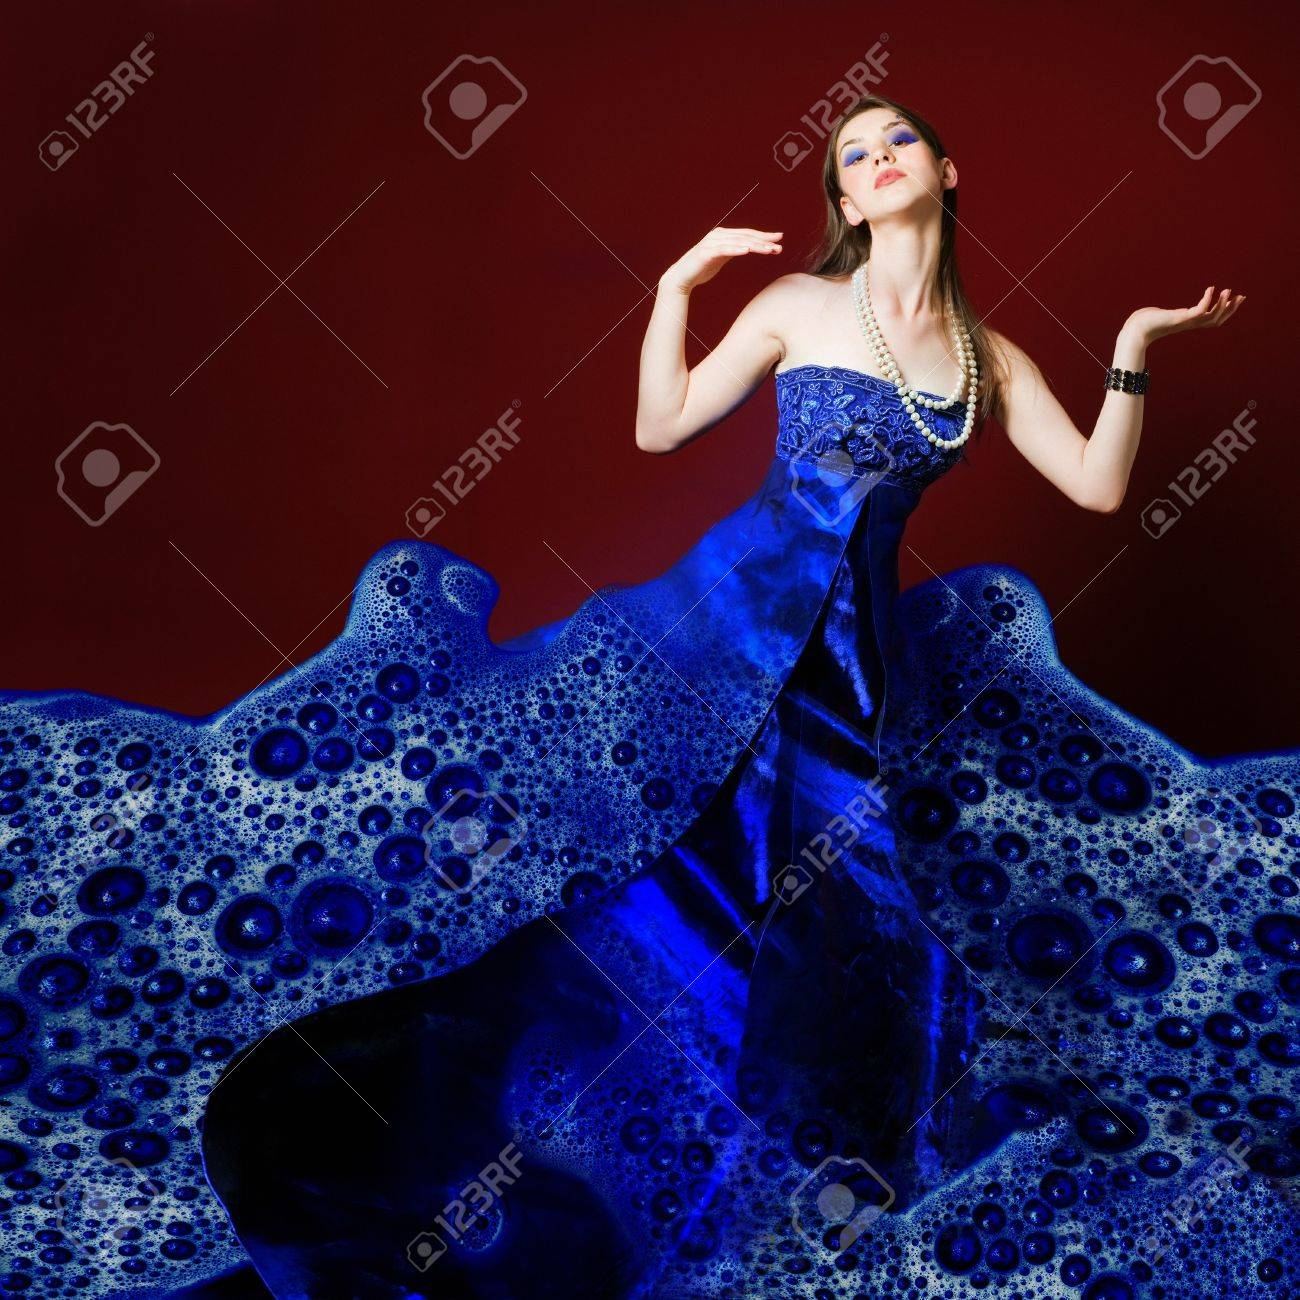 Woman dressed in blue soap bubble evening garment, grain added Stock Photo - 8258306